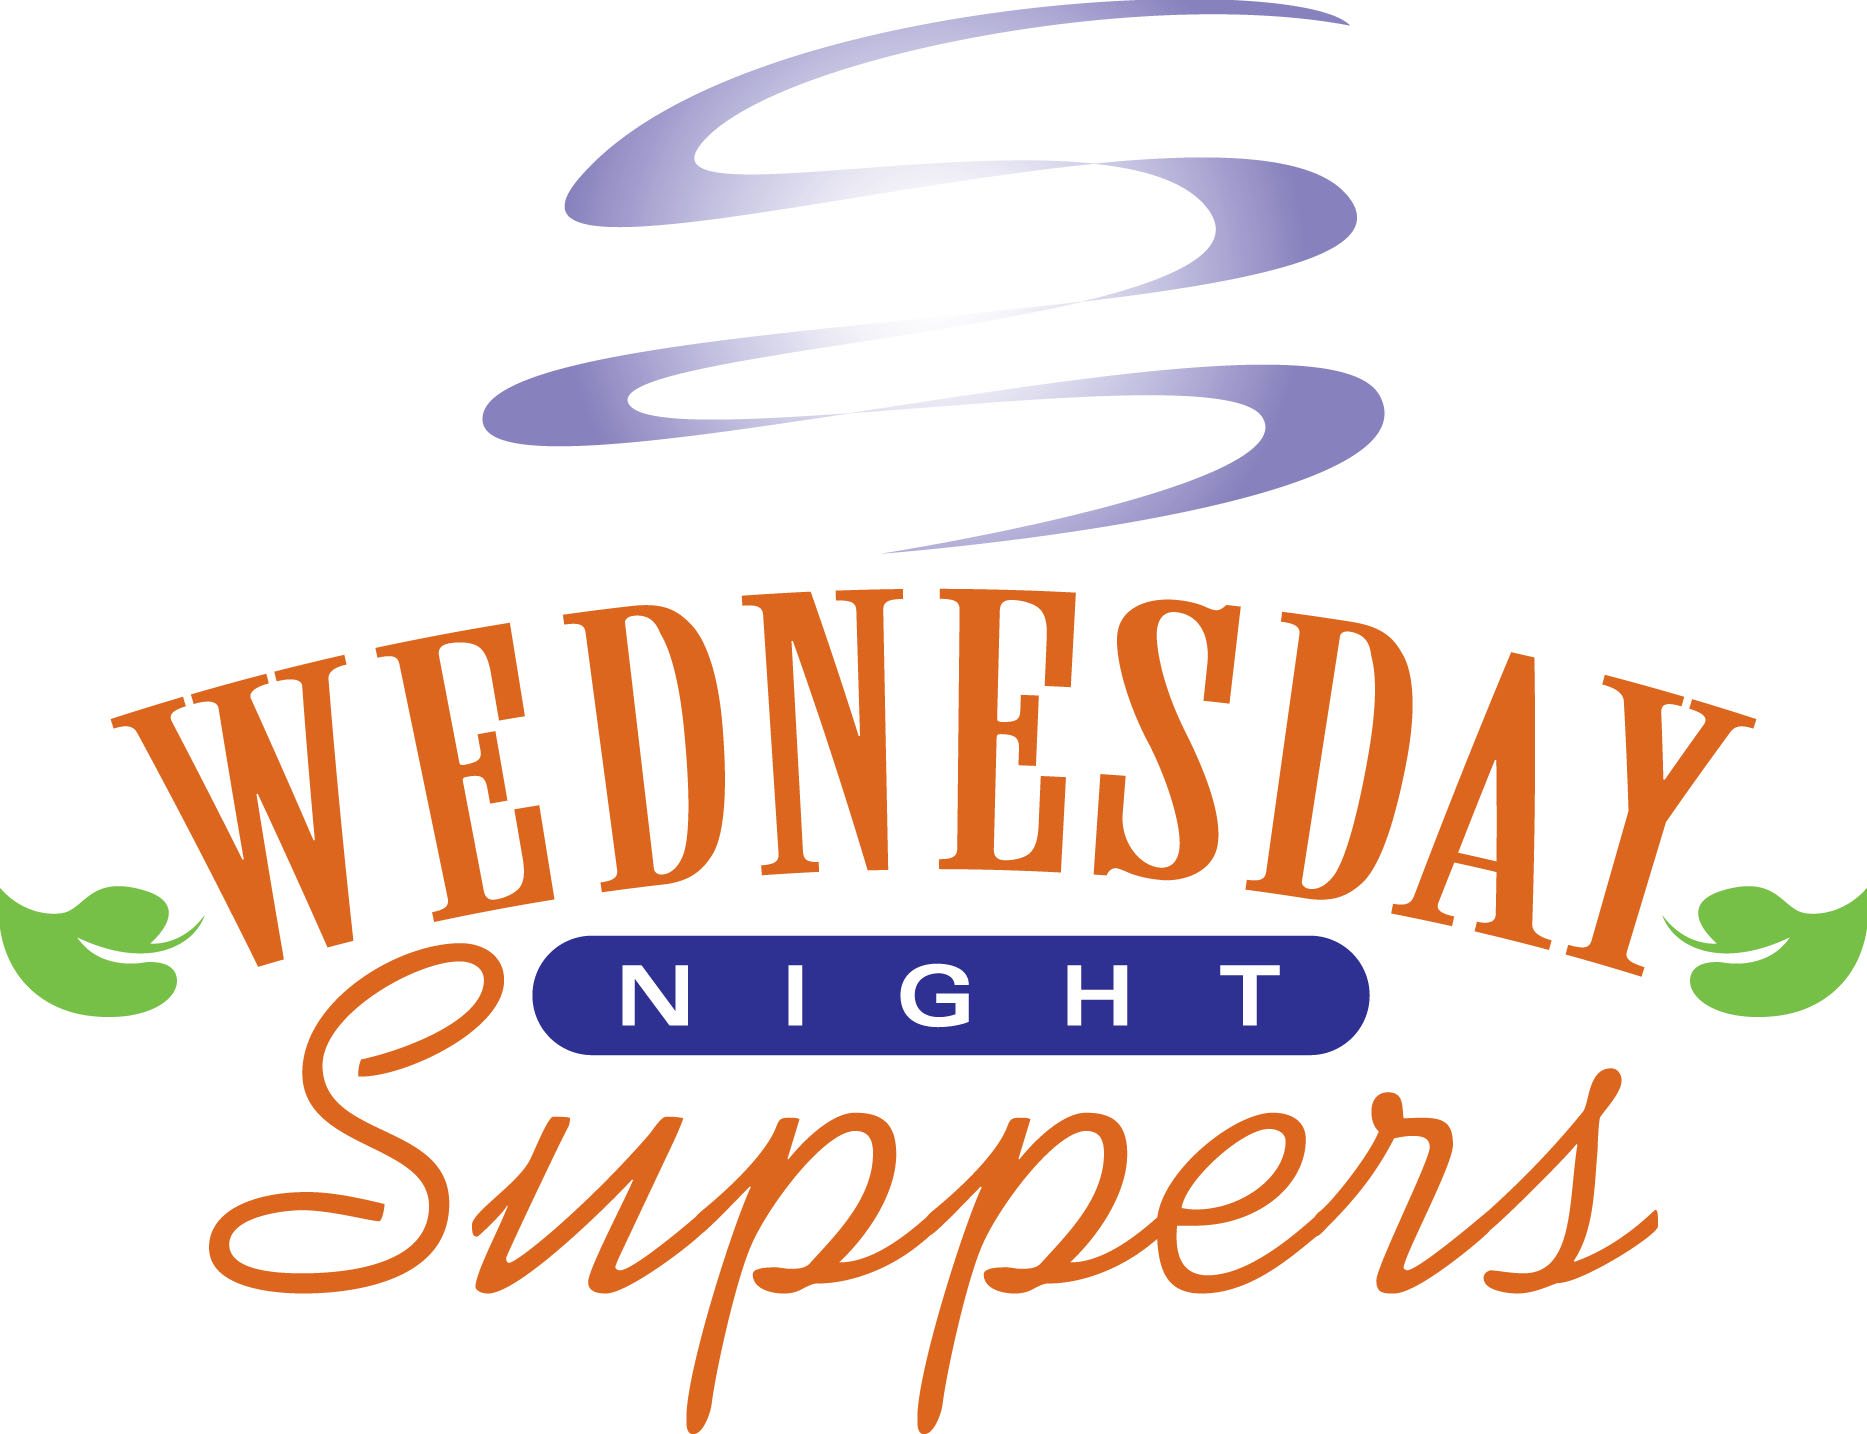 Wednesday night supper clipart vector free download Wednesday Night Supper | Dahlonega United Methodist Church vector free download